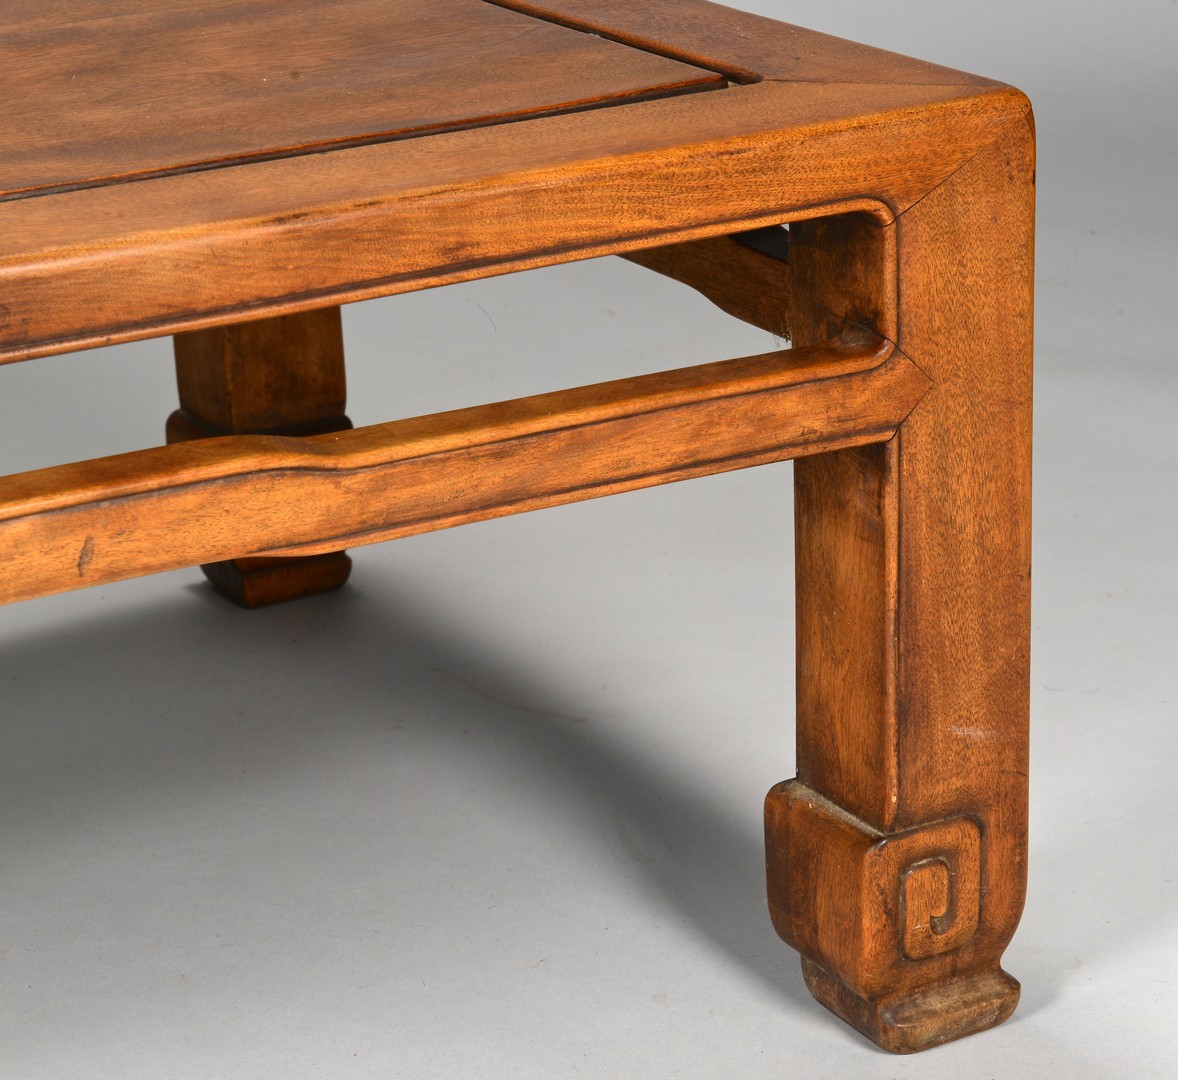 Lot 379: Chinese Hardwood Low Table